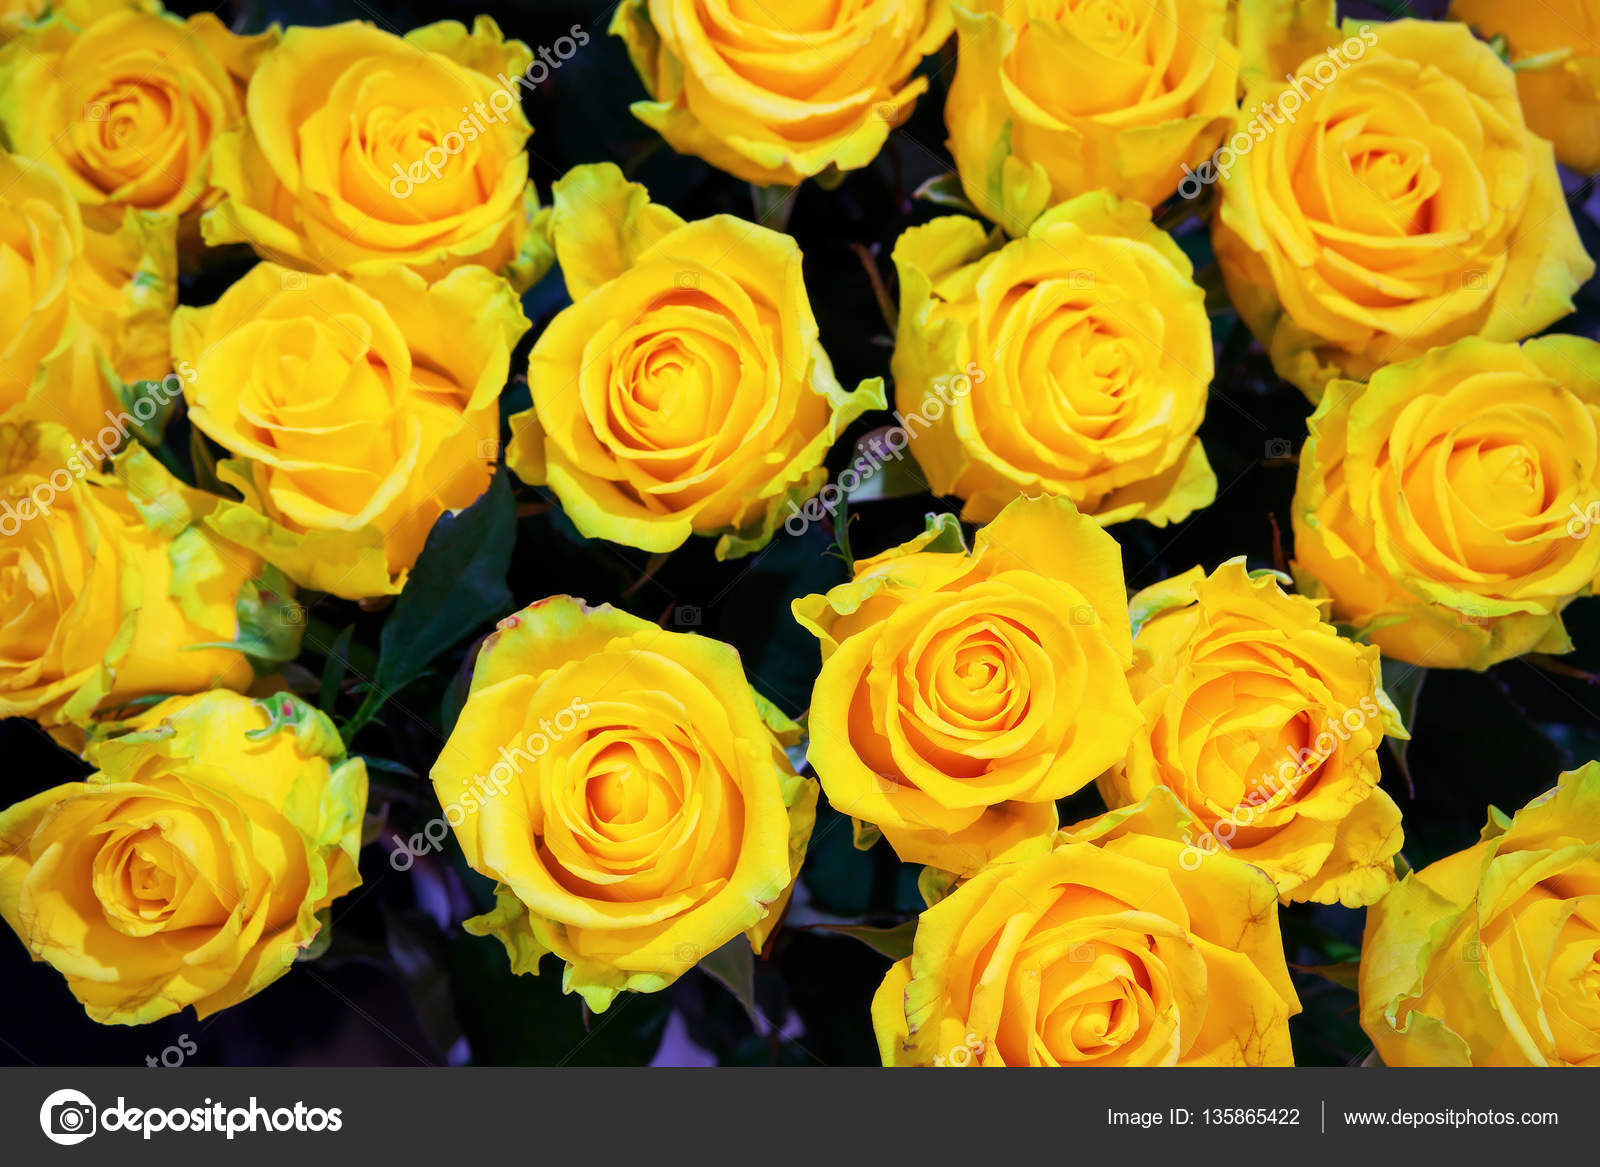 Yellow Roses Flowers Floral Background For Mothers Day Wedding